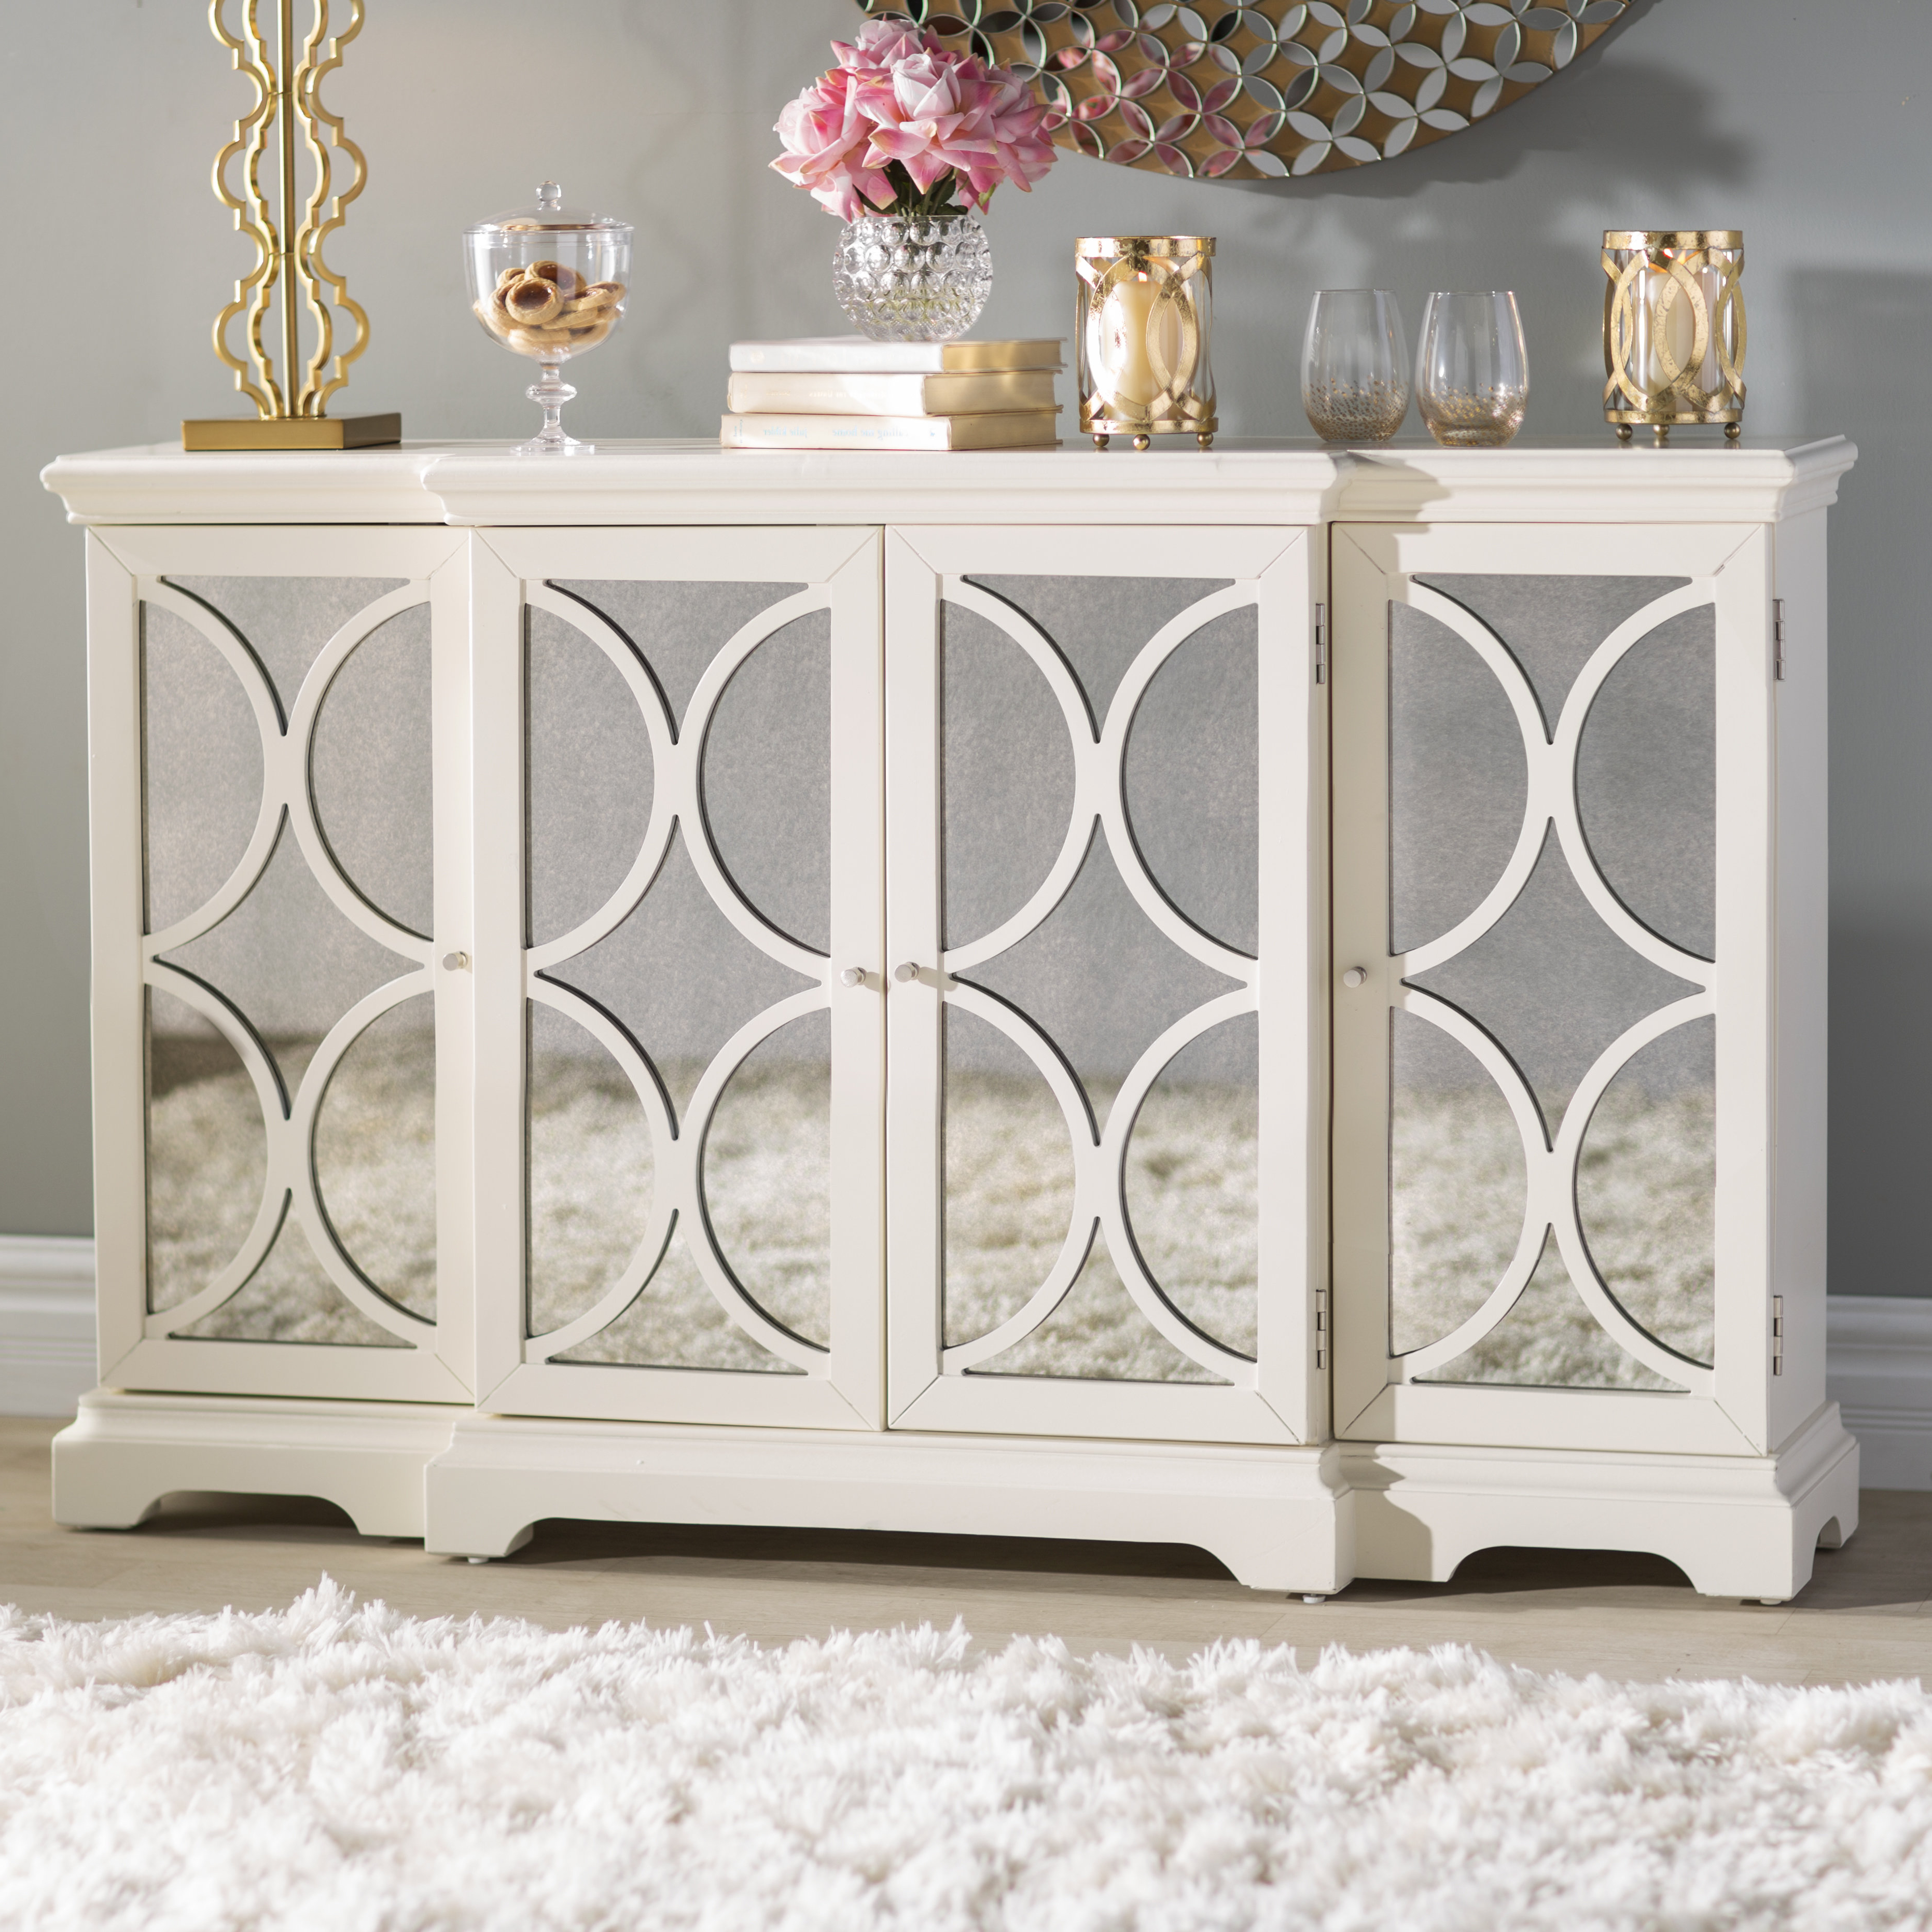 Cream Credenza | Wayfair Intended For Floral Blush Yellow Credenzas (View 17 of 20)